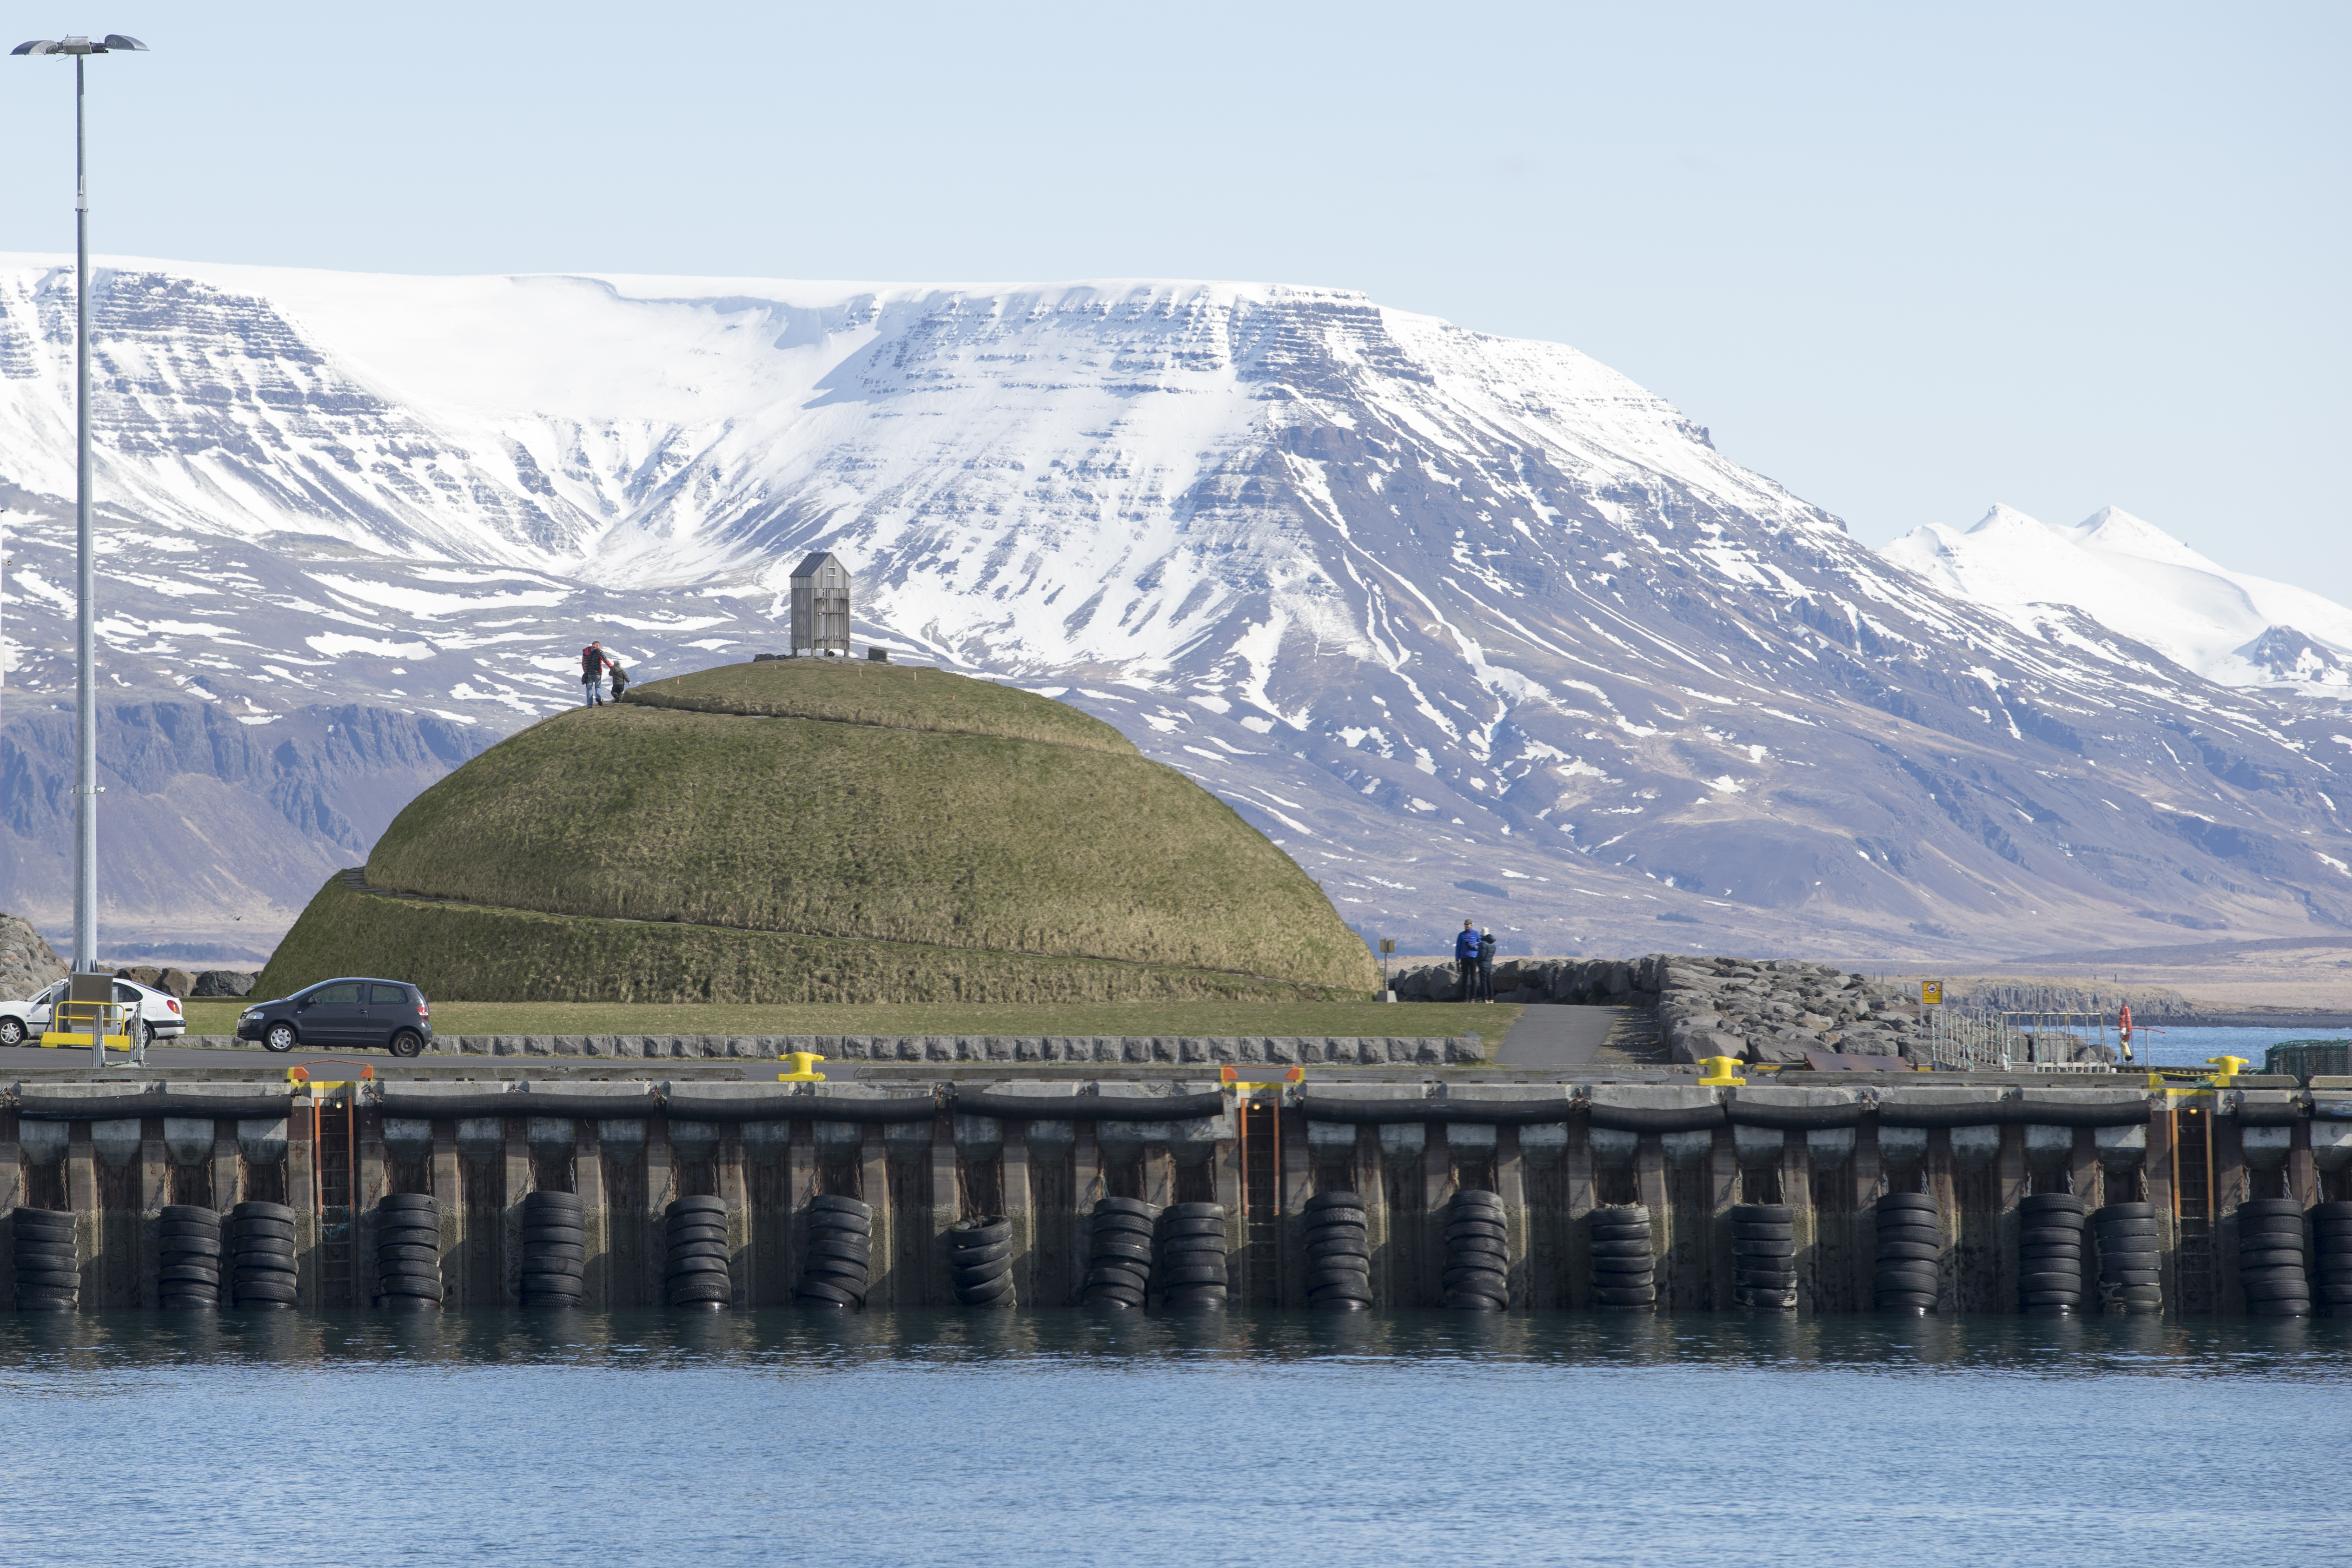 Pin By Reykjavik Reykjavik On Mobile Wallpaper: These Are The Fastest-growing Destinations For The First